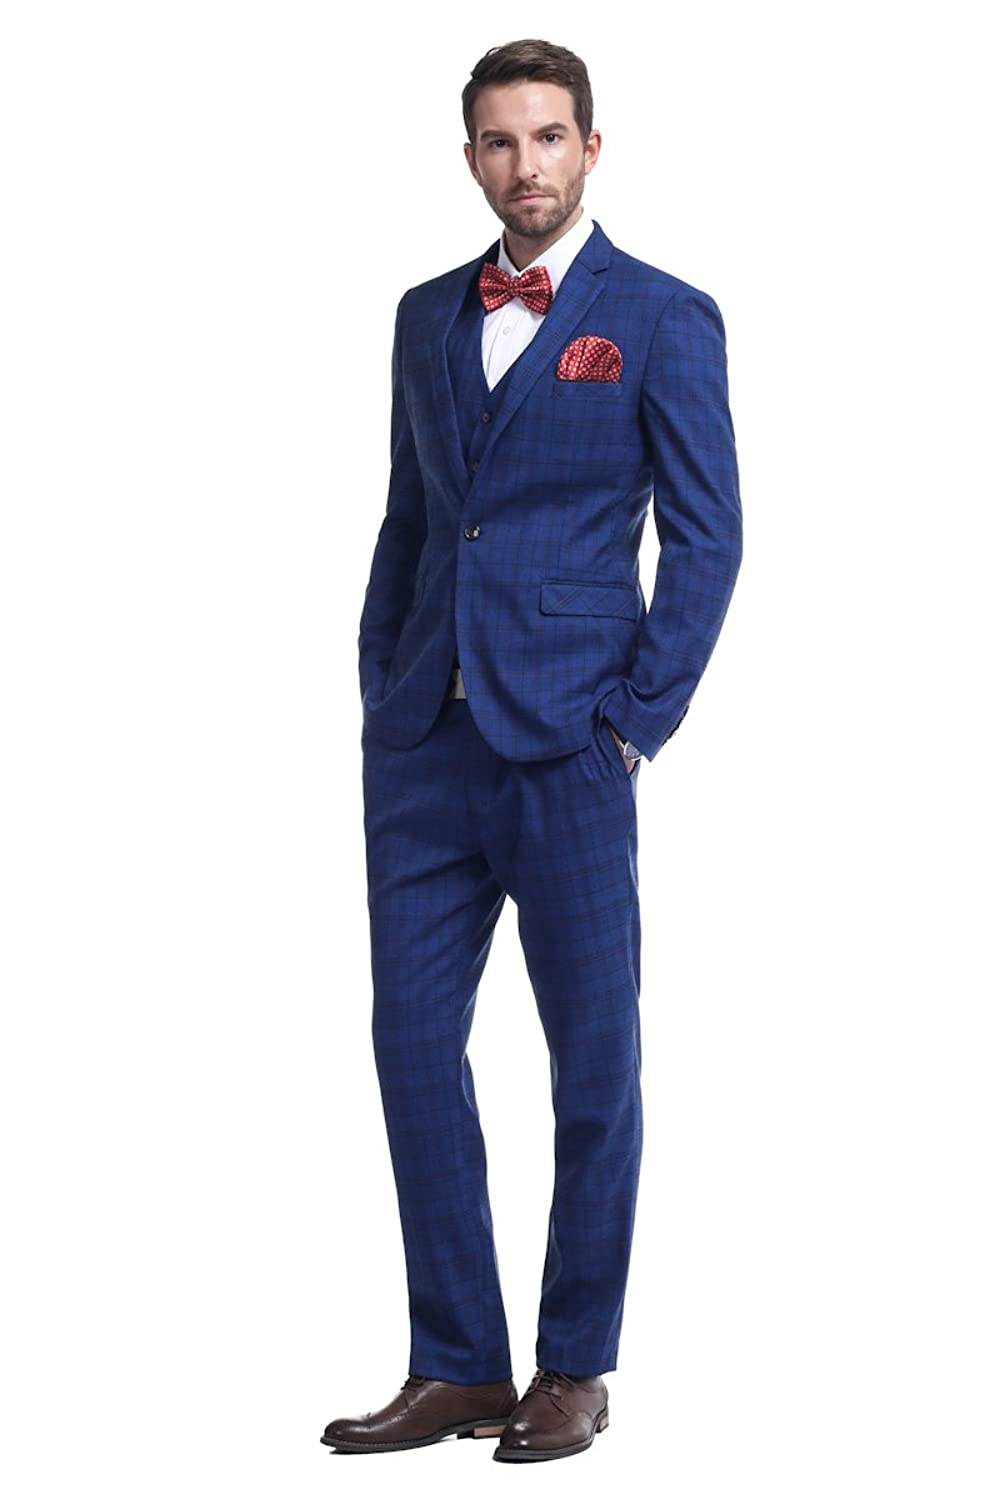 Men's Vintage Style Suits, Classic Suits Cloudstyle Mens One-Button Designer Luxurious Suits Plaid Tuxedos 3-Piece Set $103.99 AT vintagedancer.com